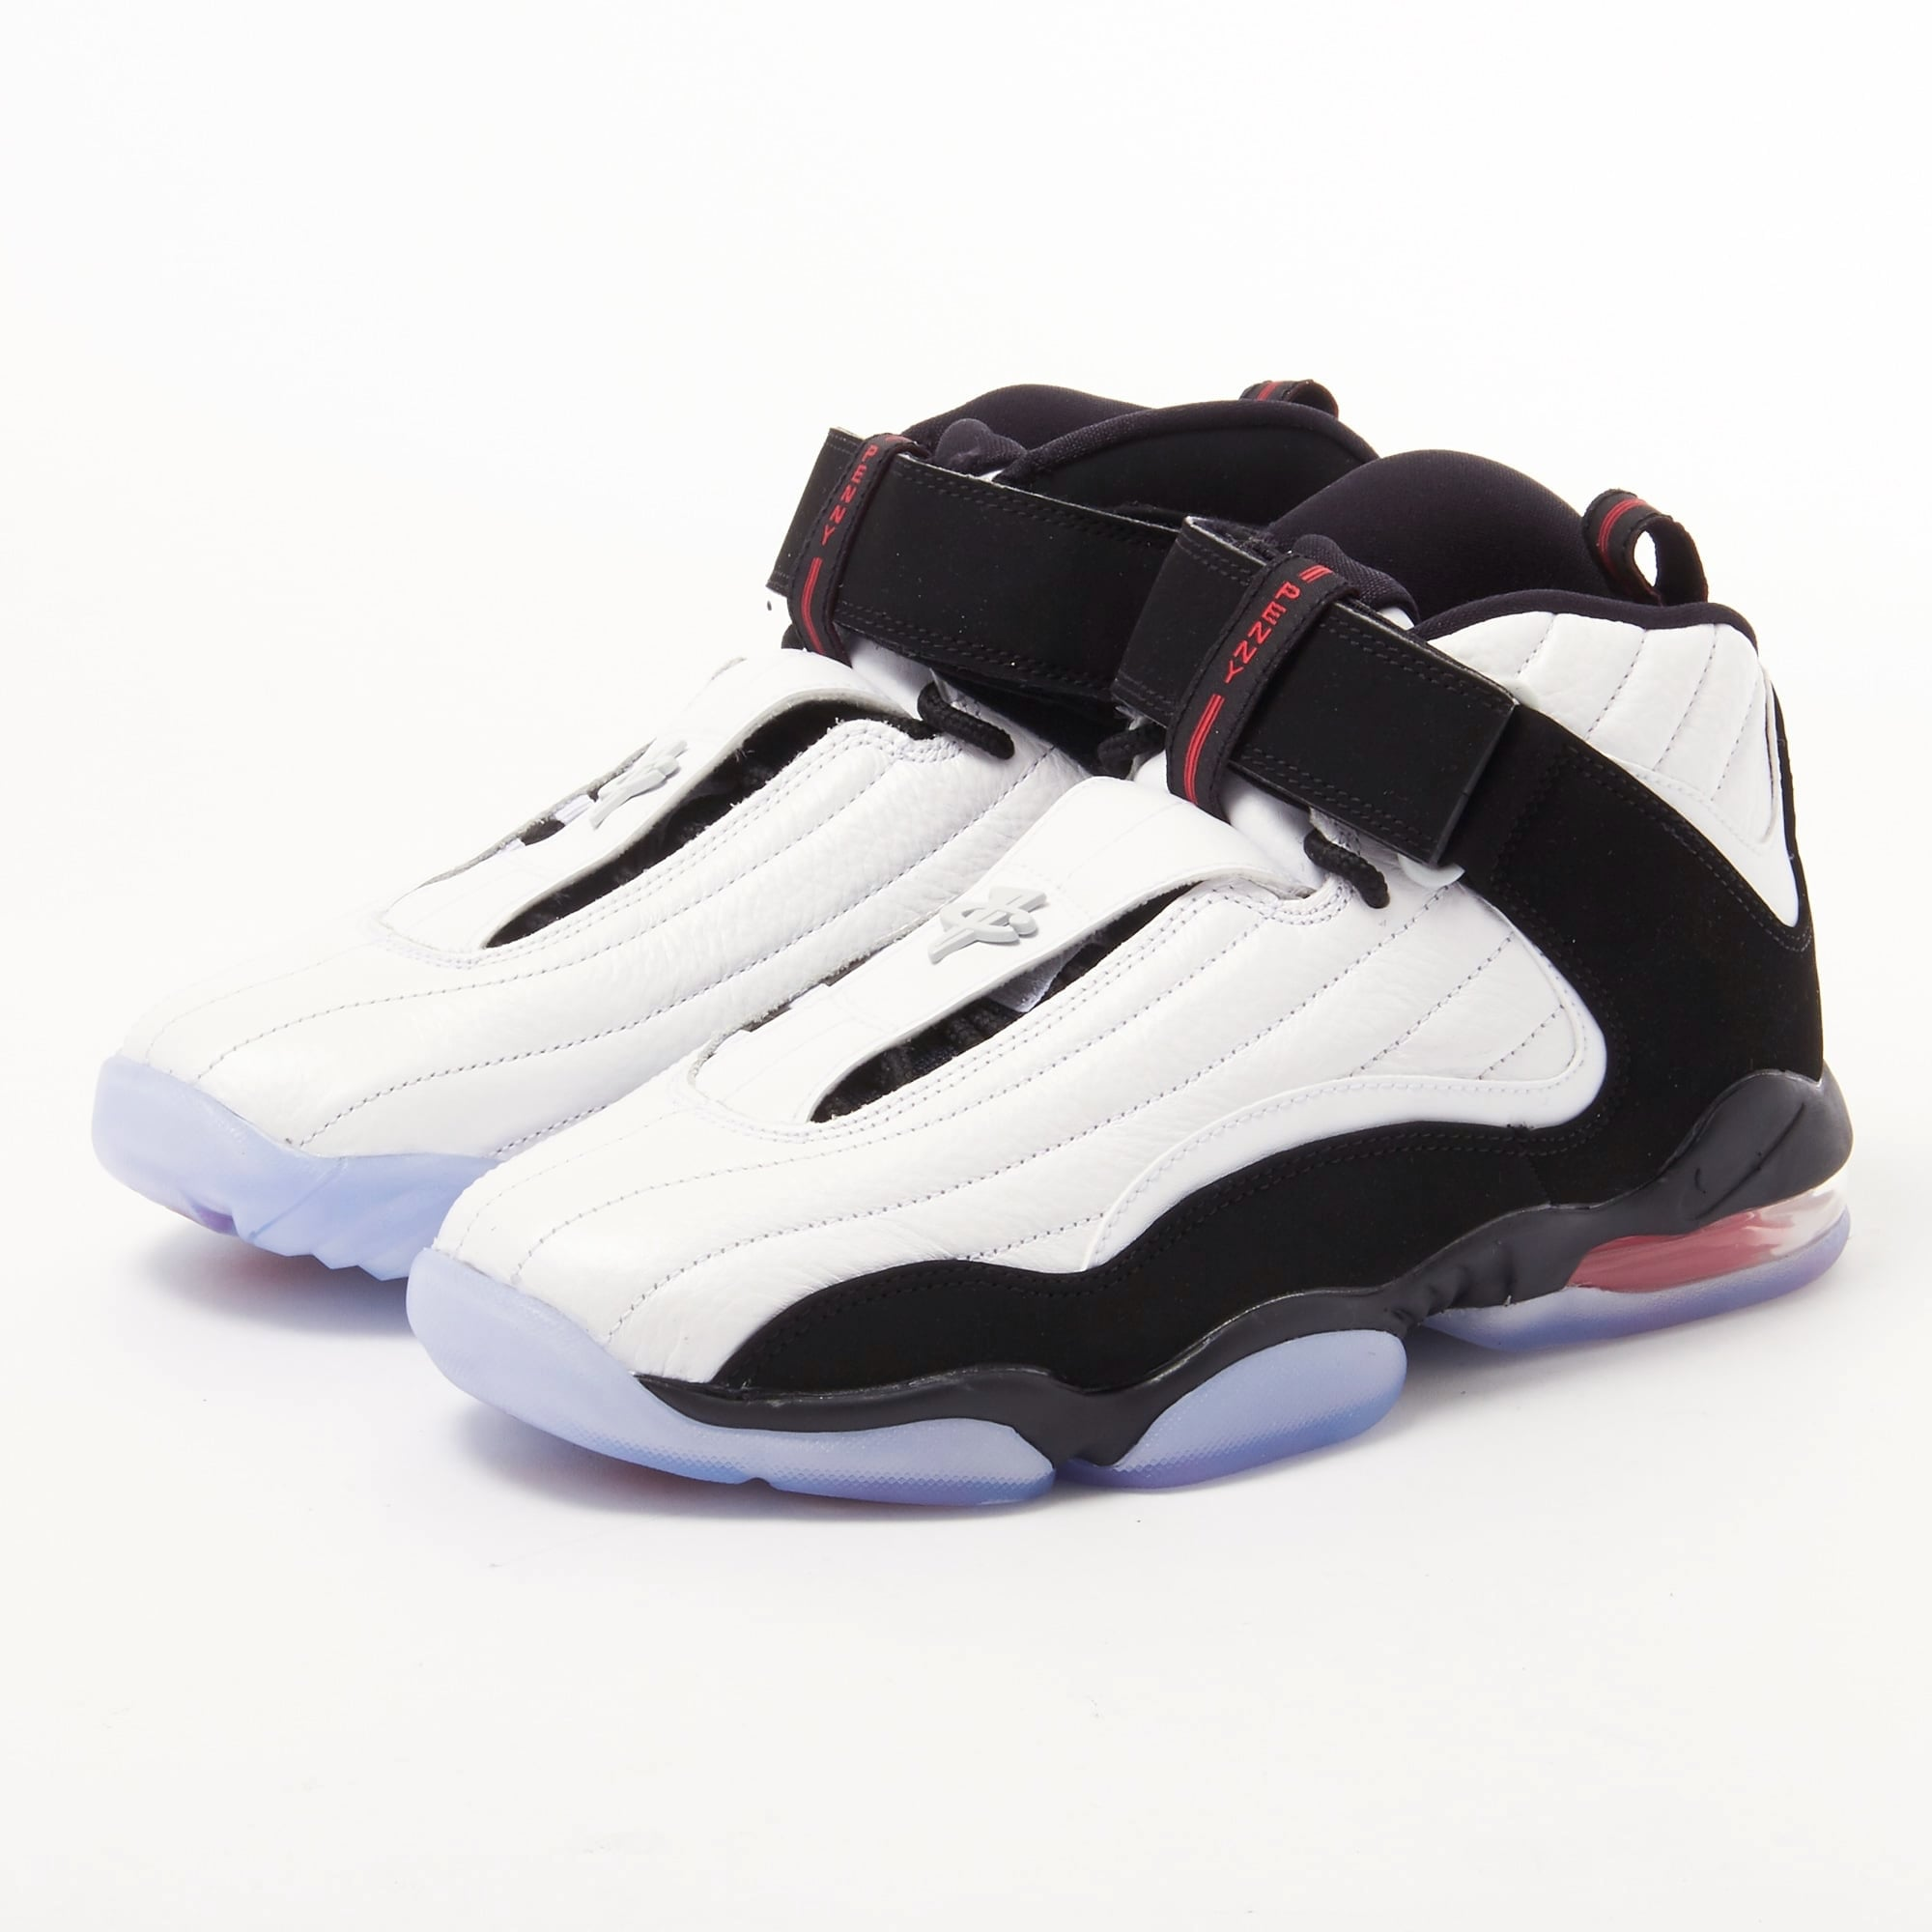 (864018-101) MEN'S NIKE AIR PENNY IV WHITE/BLACK/TRUE RED